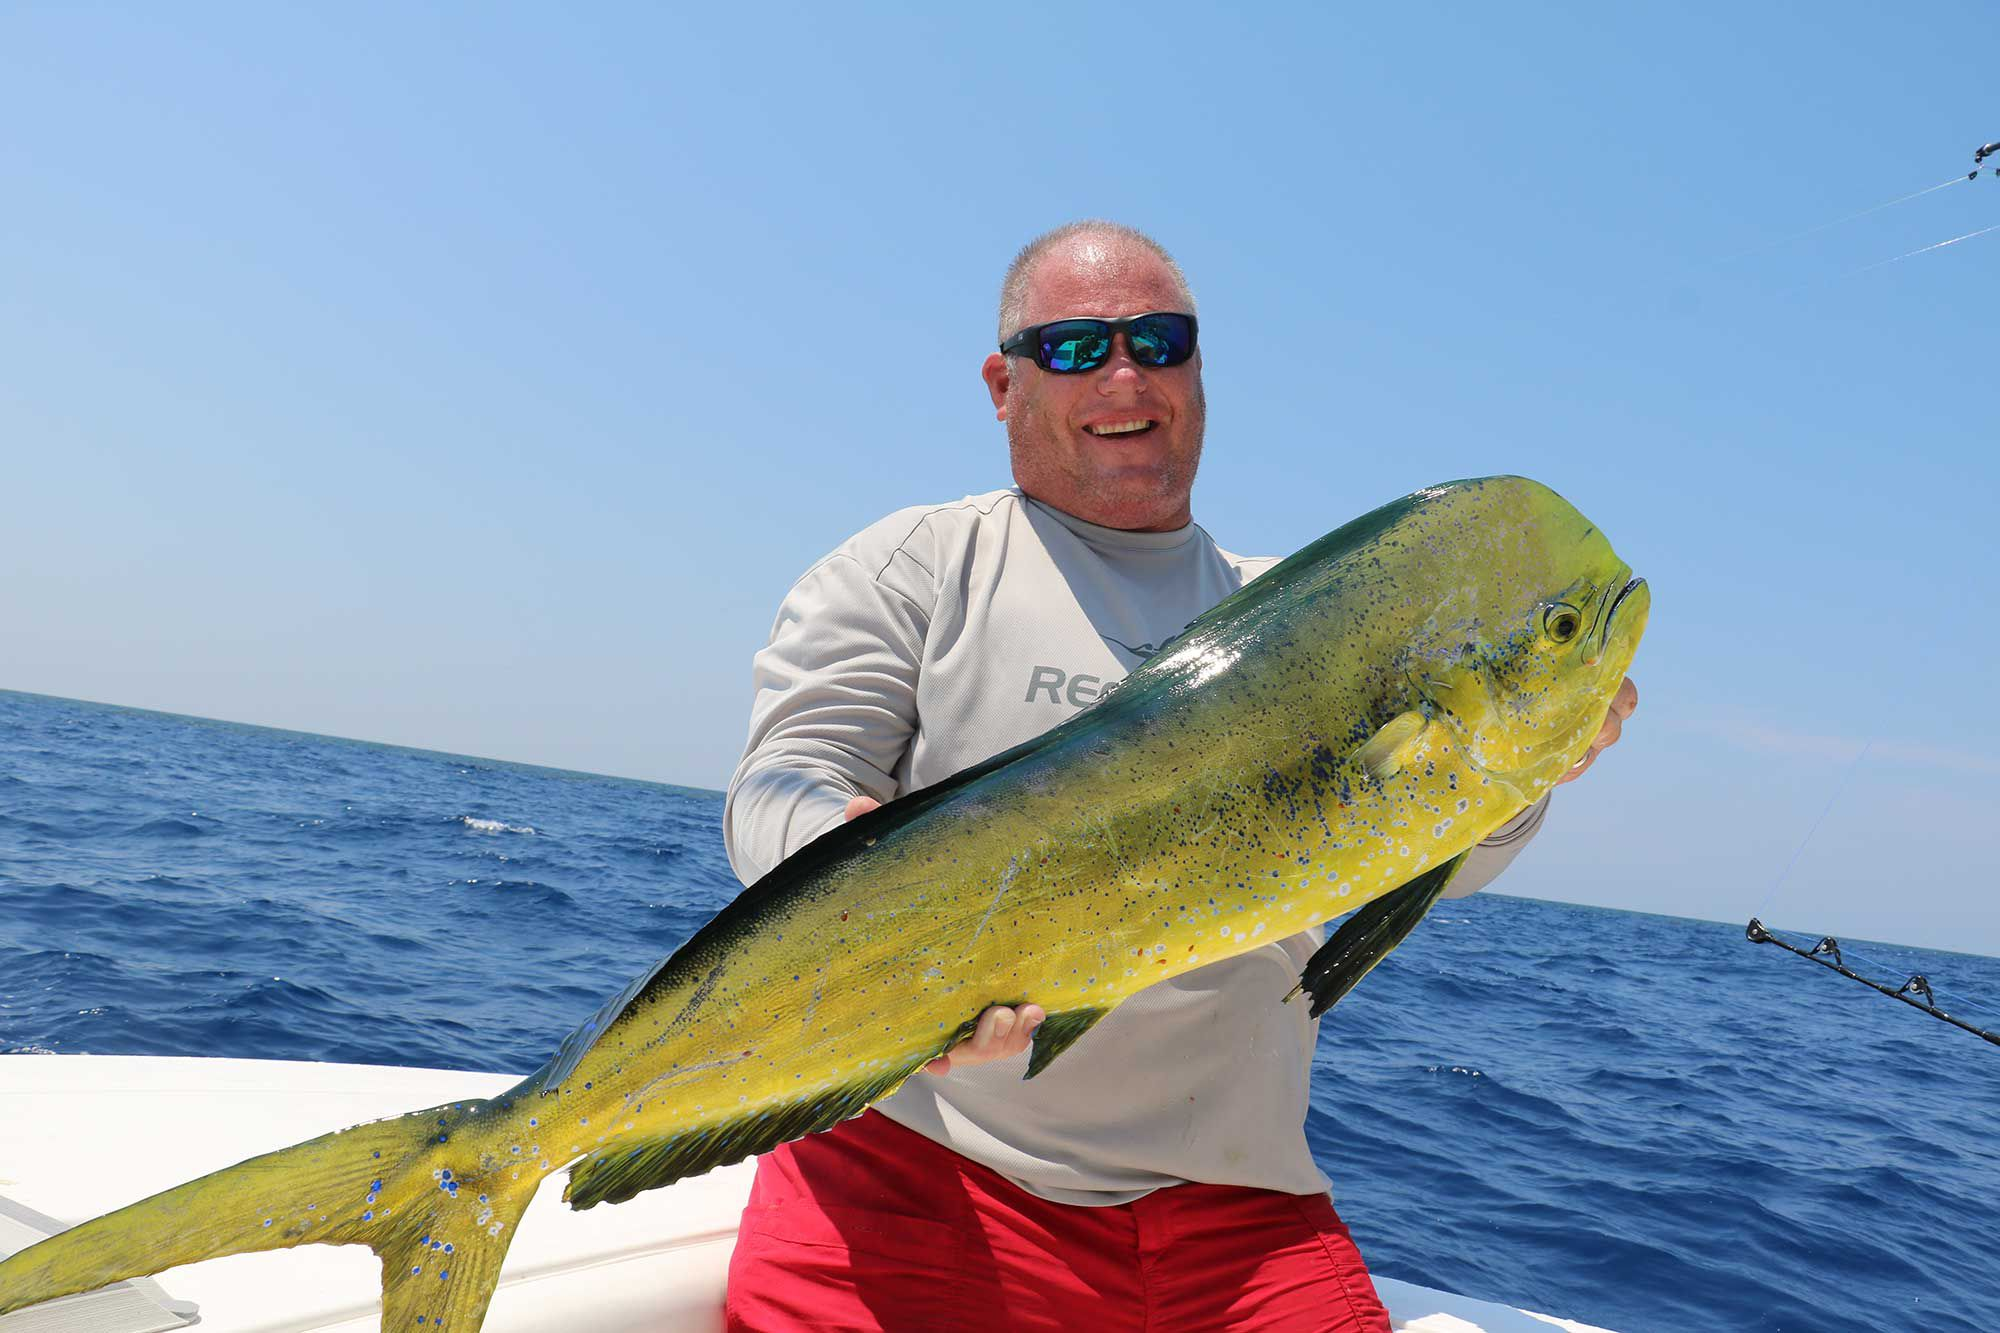 Multiday Fishing Trip to the Gulf of Mexico   Sport Fishing